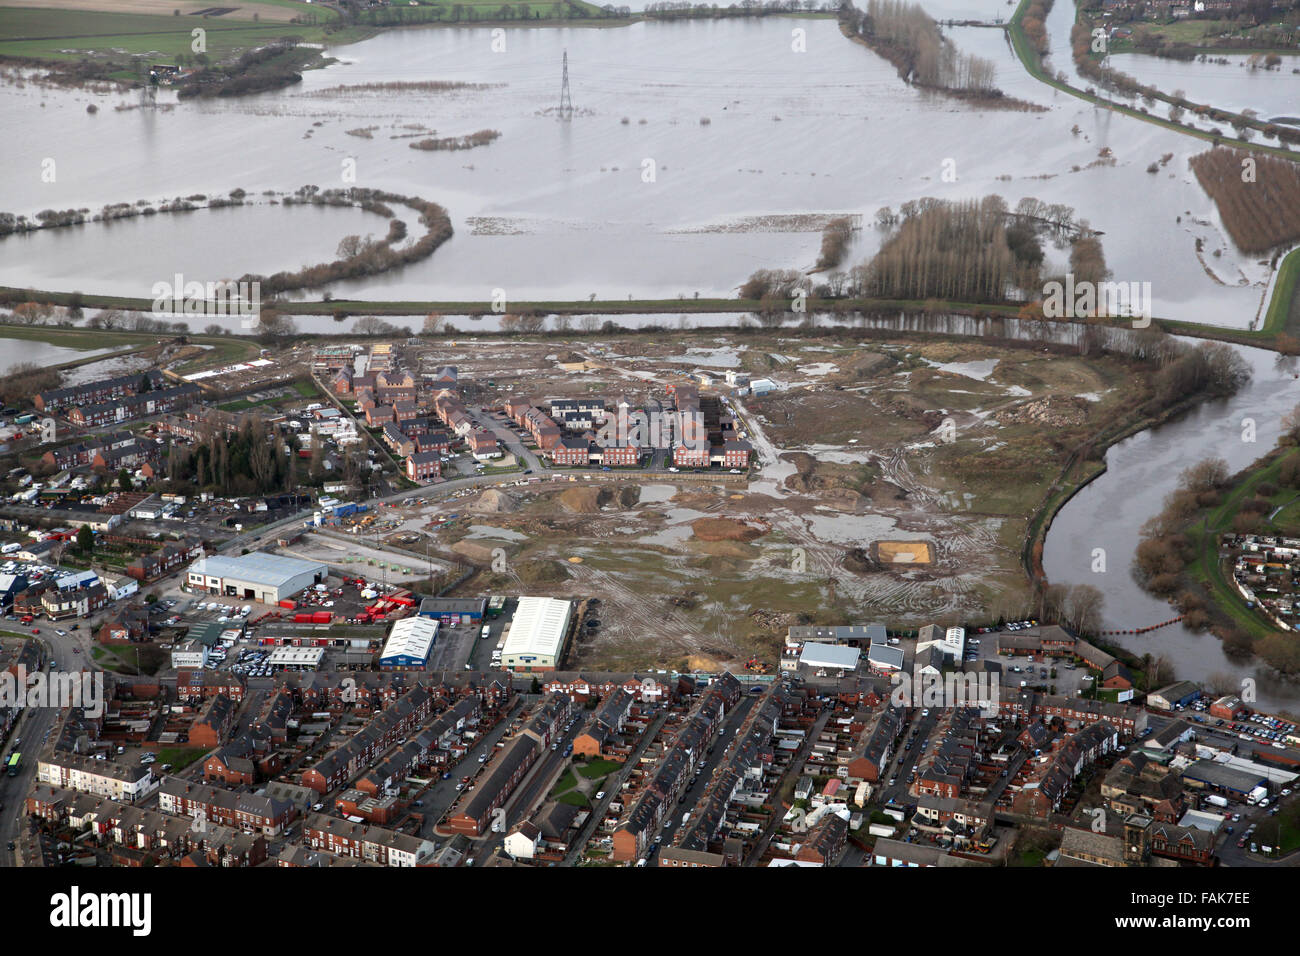 aerial view of a house building site in Castleford, West Yorkshire close to being flooded Stock Photo